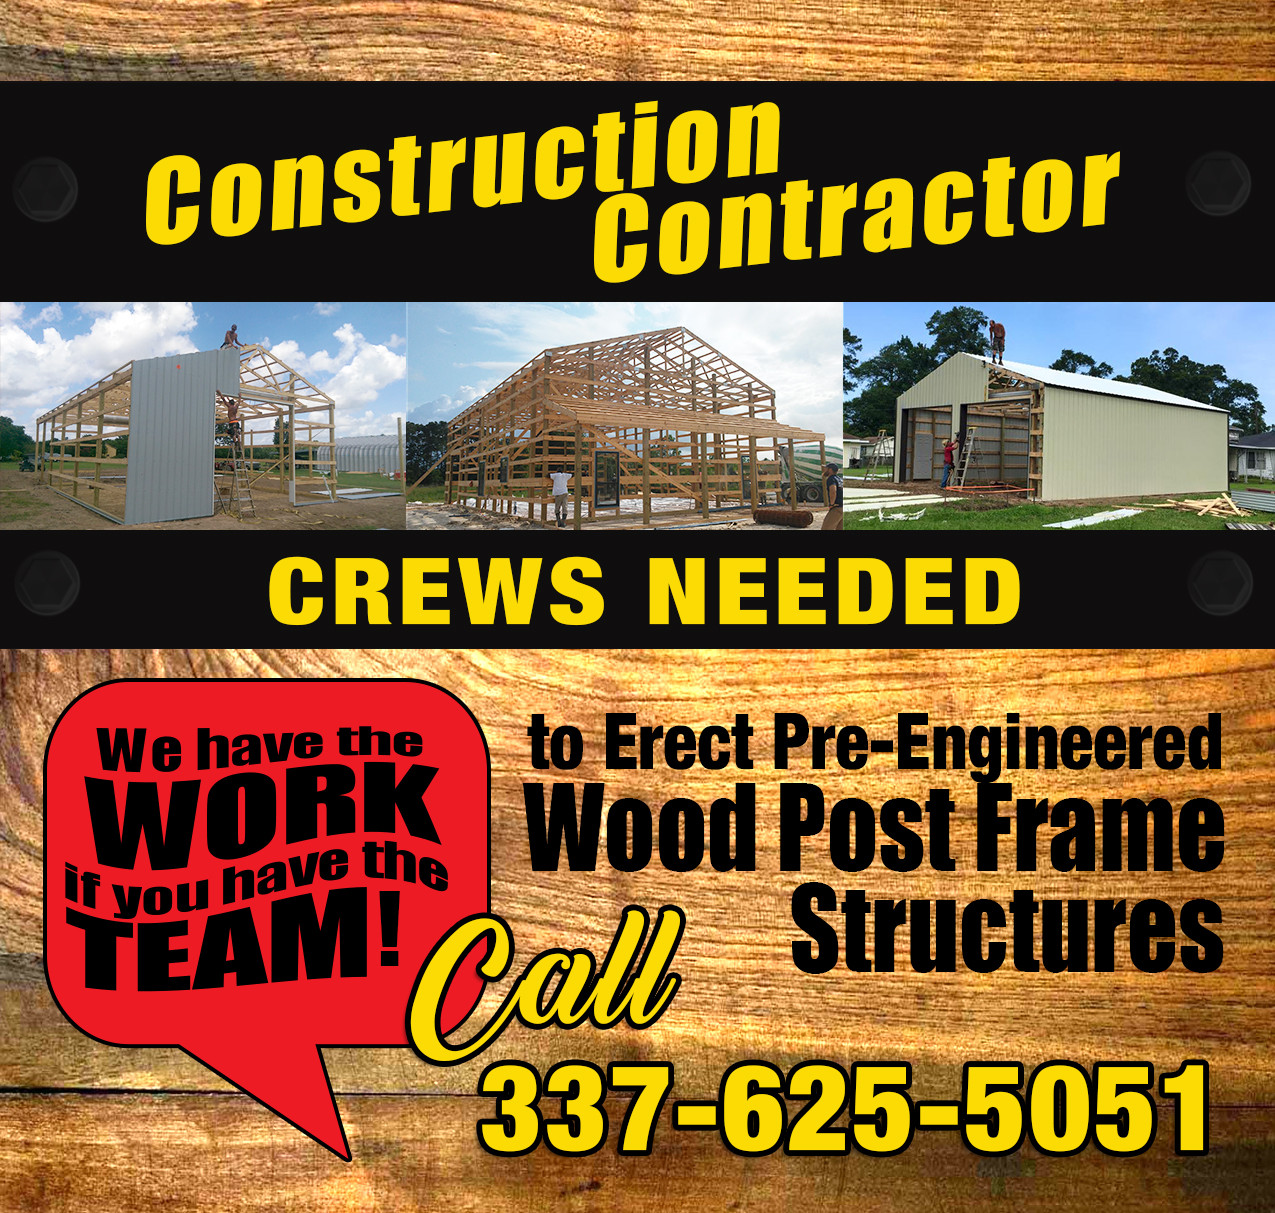 Construction Contractor Crews Needed